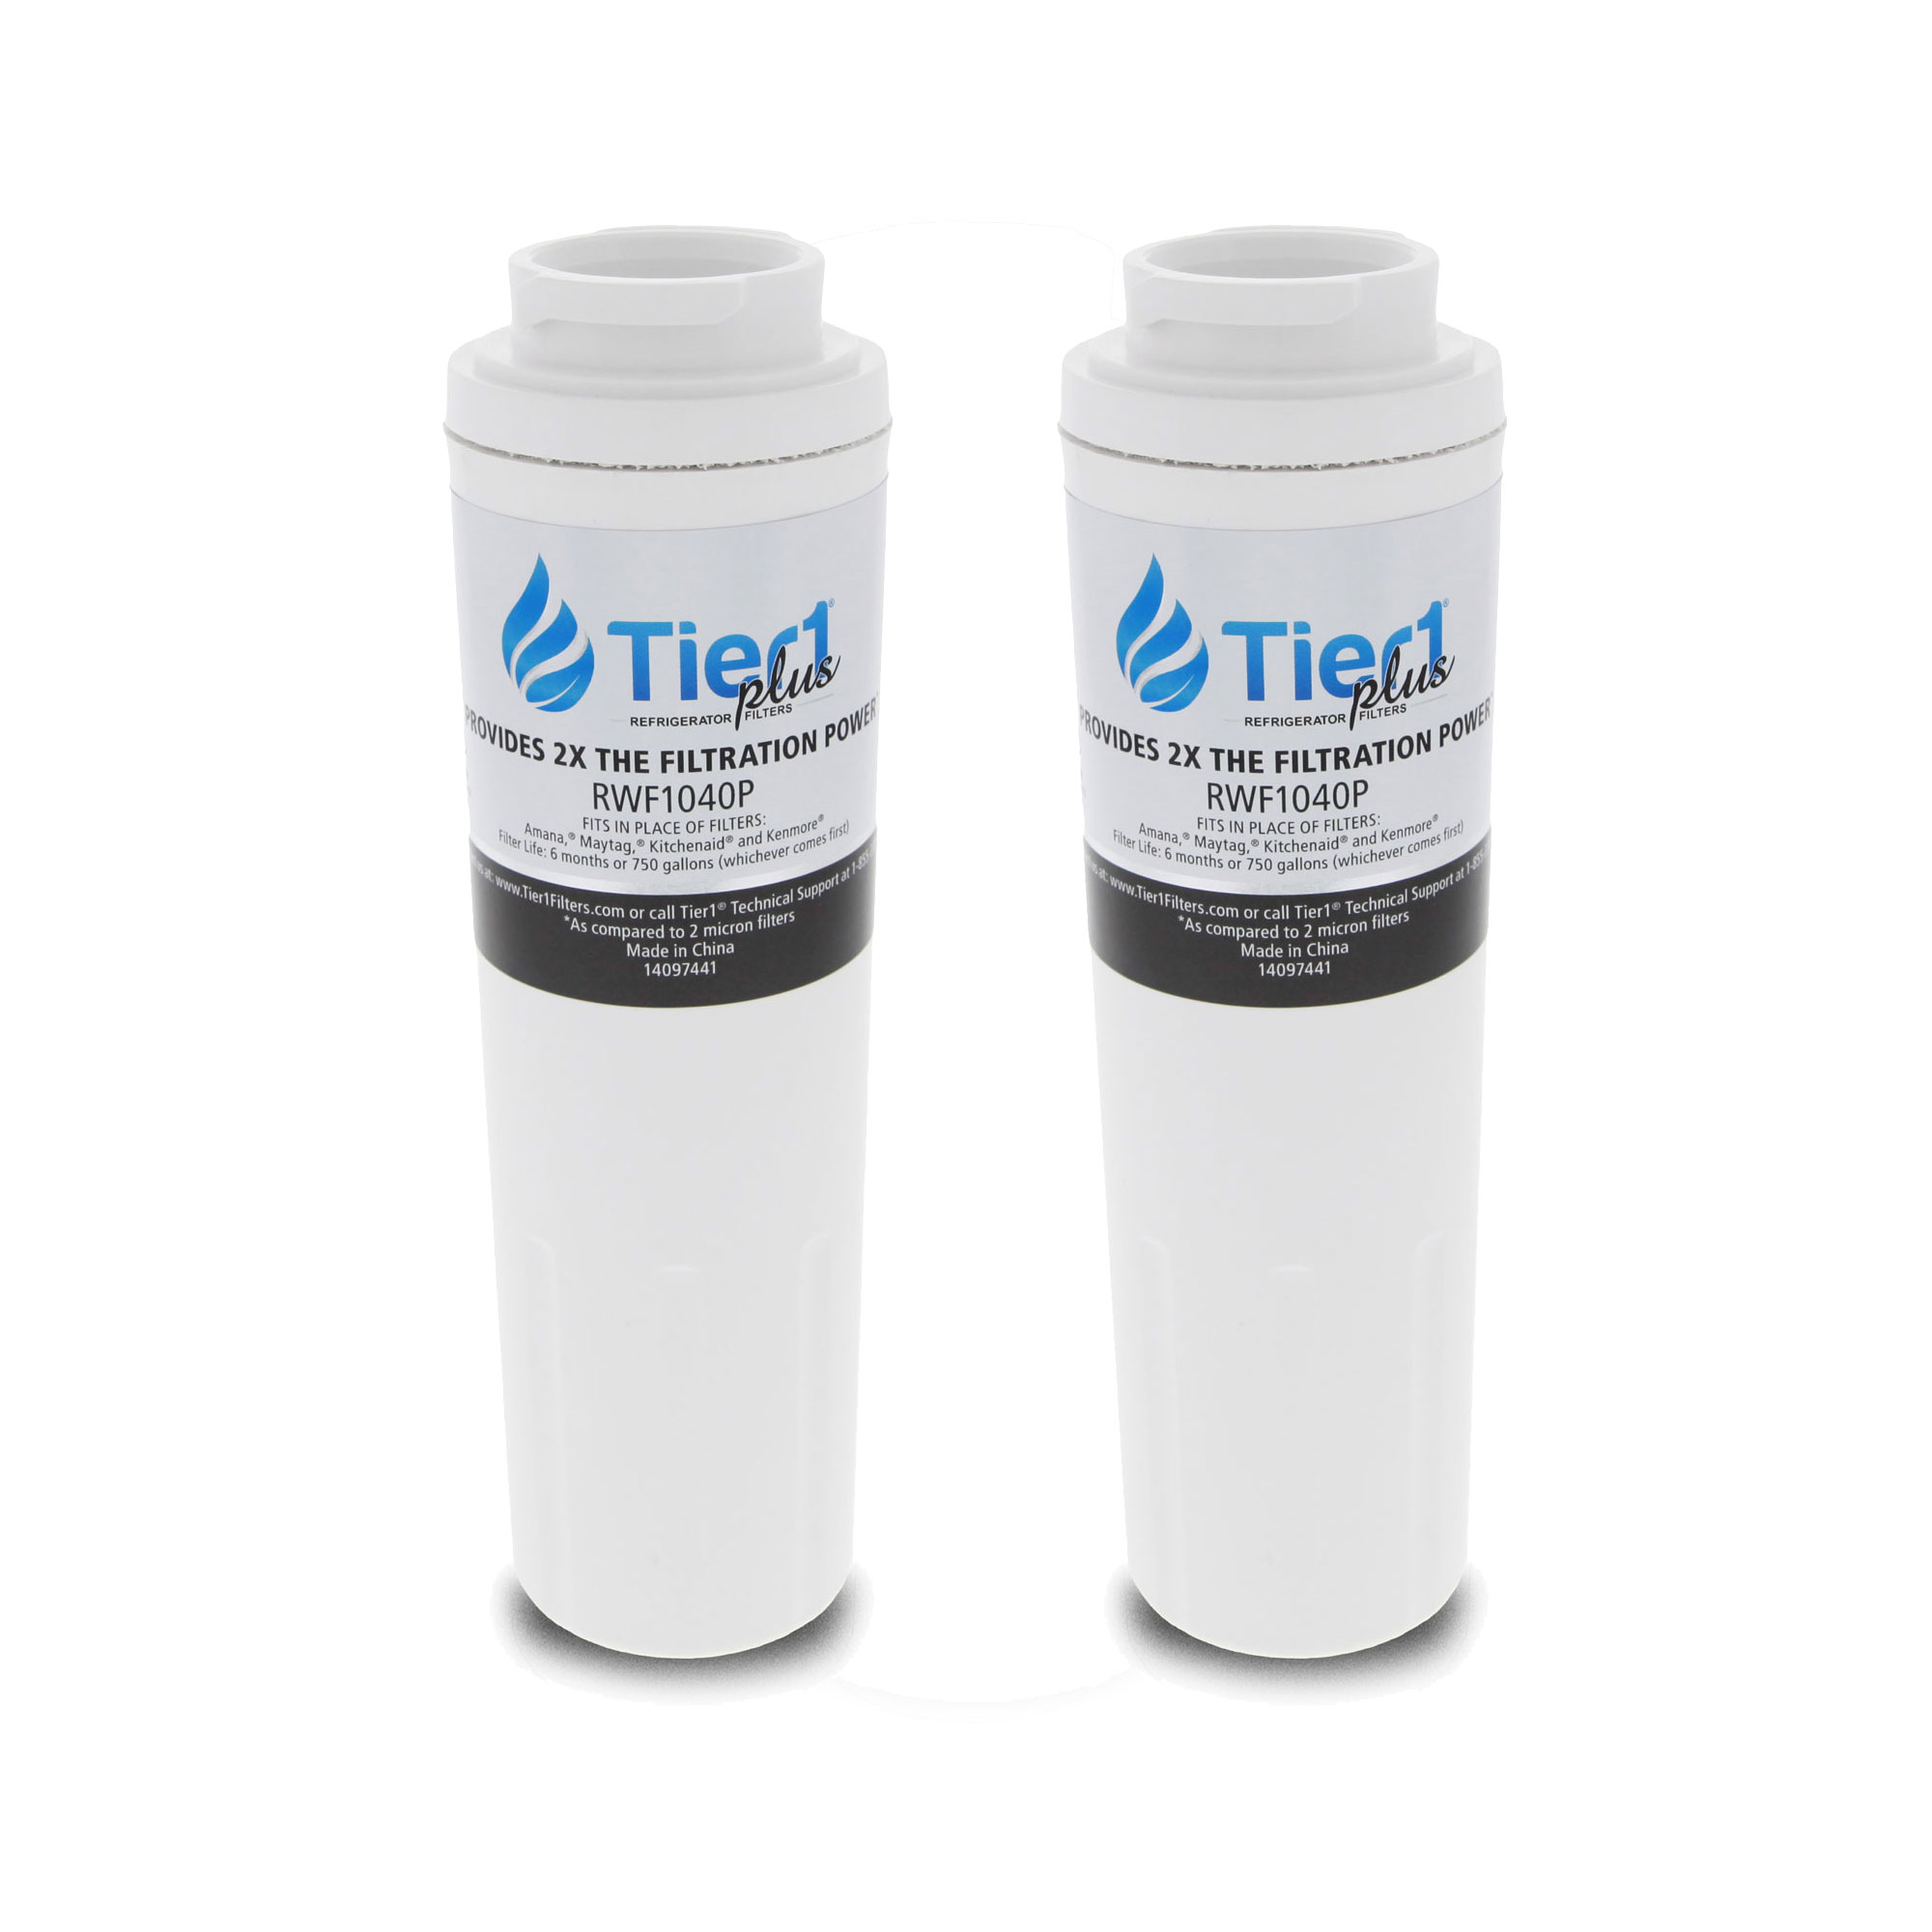 EDR4RXD1 UKF8001 Maytag Comparable Refrigerator Water Filter Replacement by Tier1 Plus (2-Pack) TIER1_RWF1040P_2_PACK